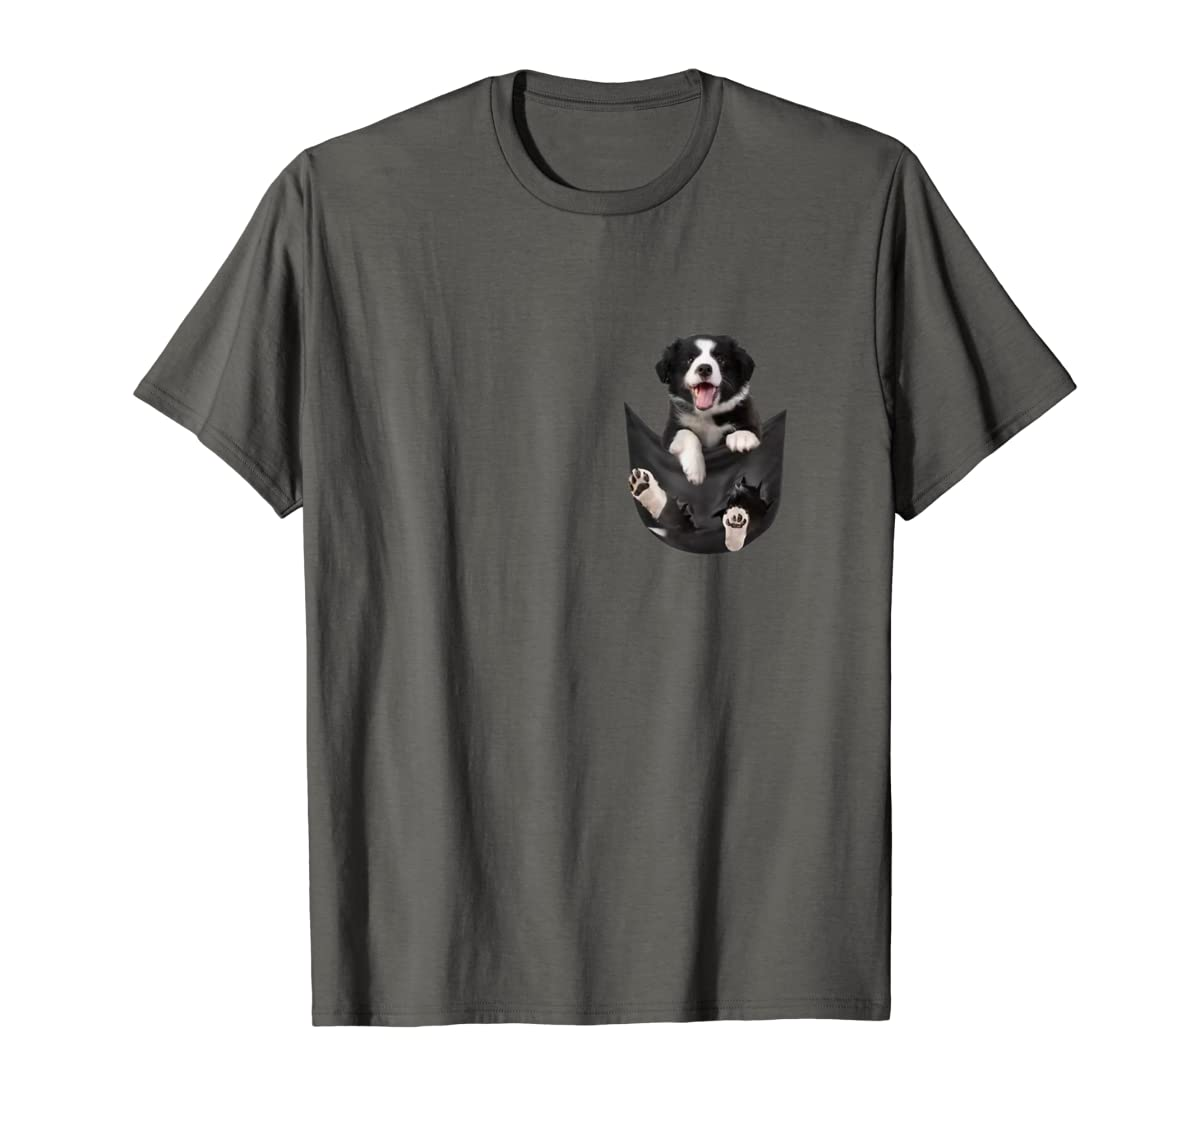 Border Collies Inside In Pocket Dog Lover T shirt Funny Cute-Men's T-Shirt-Dark Heather